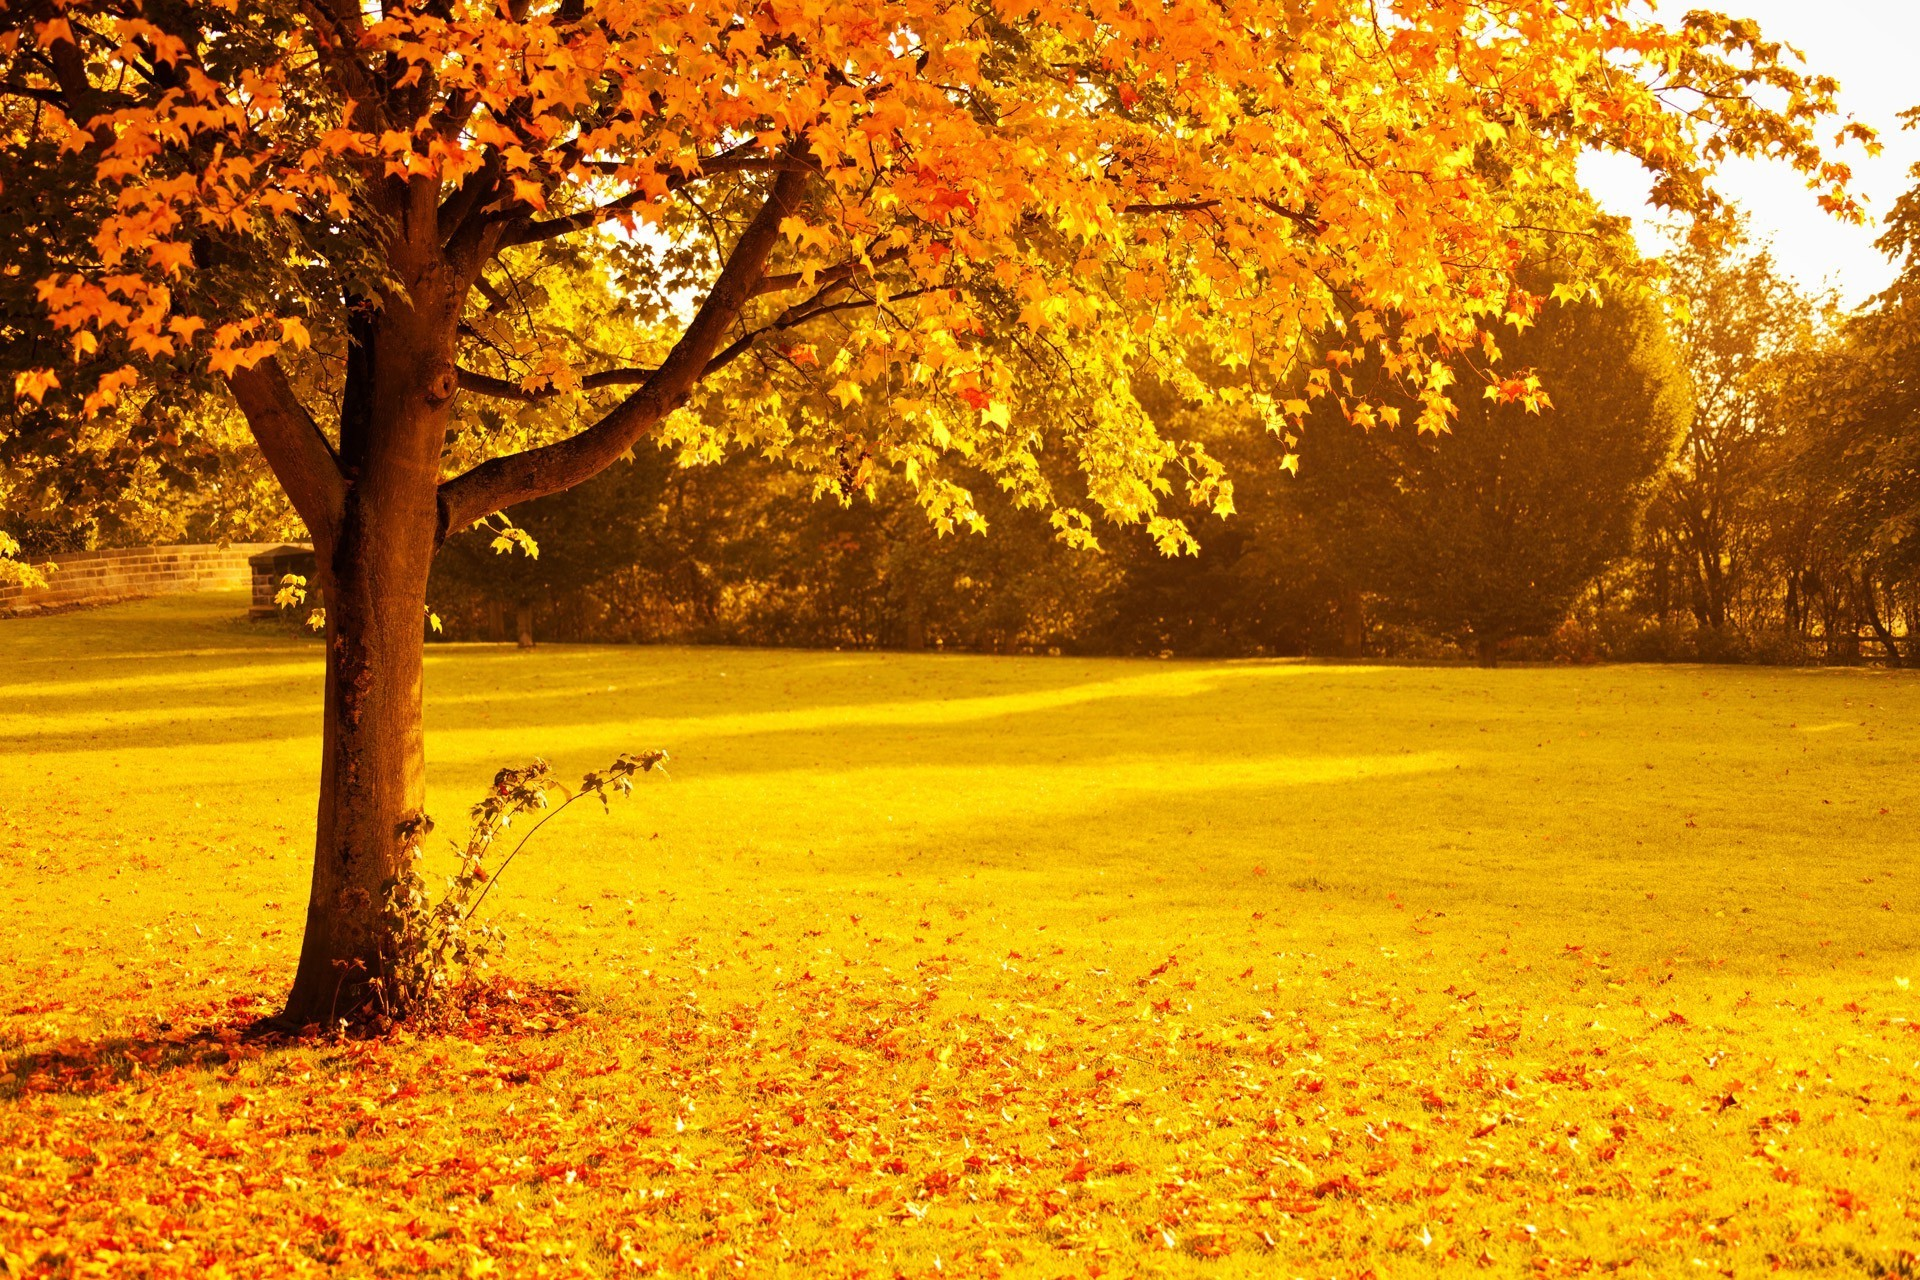 fall, Foliage, Gold, Leaves, Nature, Orange, Park, Red, Seasons, Sunlight,  Sunset, Trees, Yellow, Lights Wallpapers HD / Desktop and Mobile Backgrounds